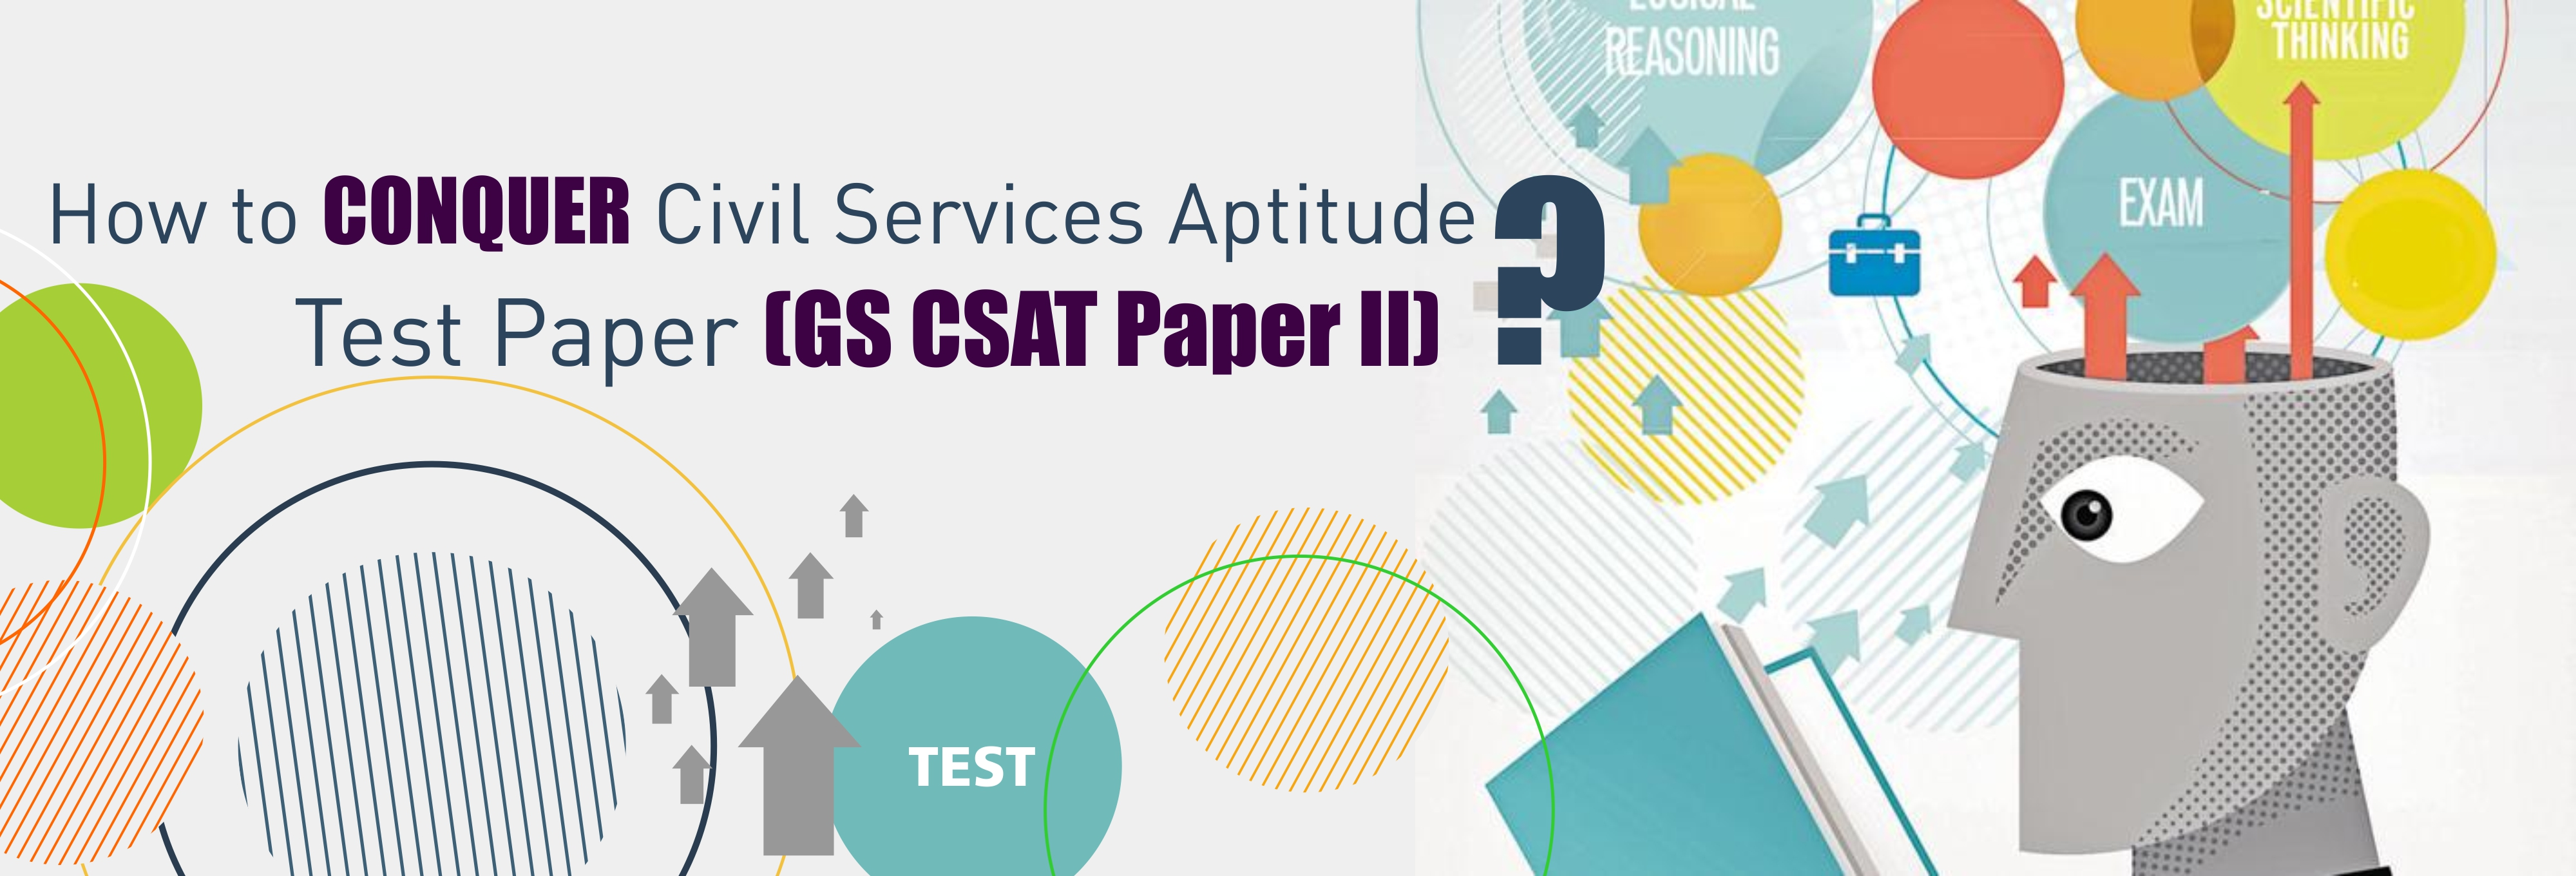 How to Conquer Civil Services Aptitude Test Paper